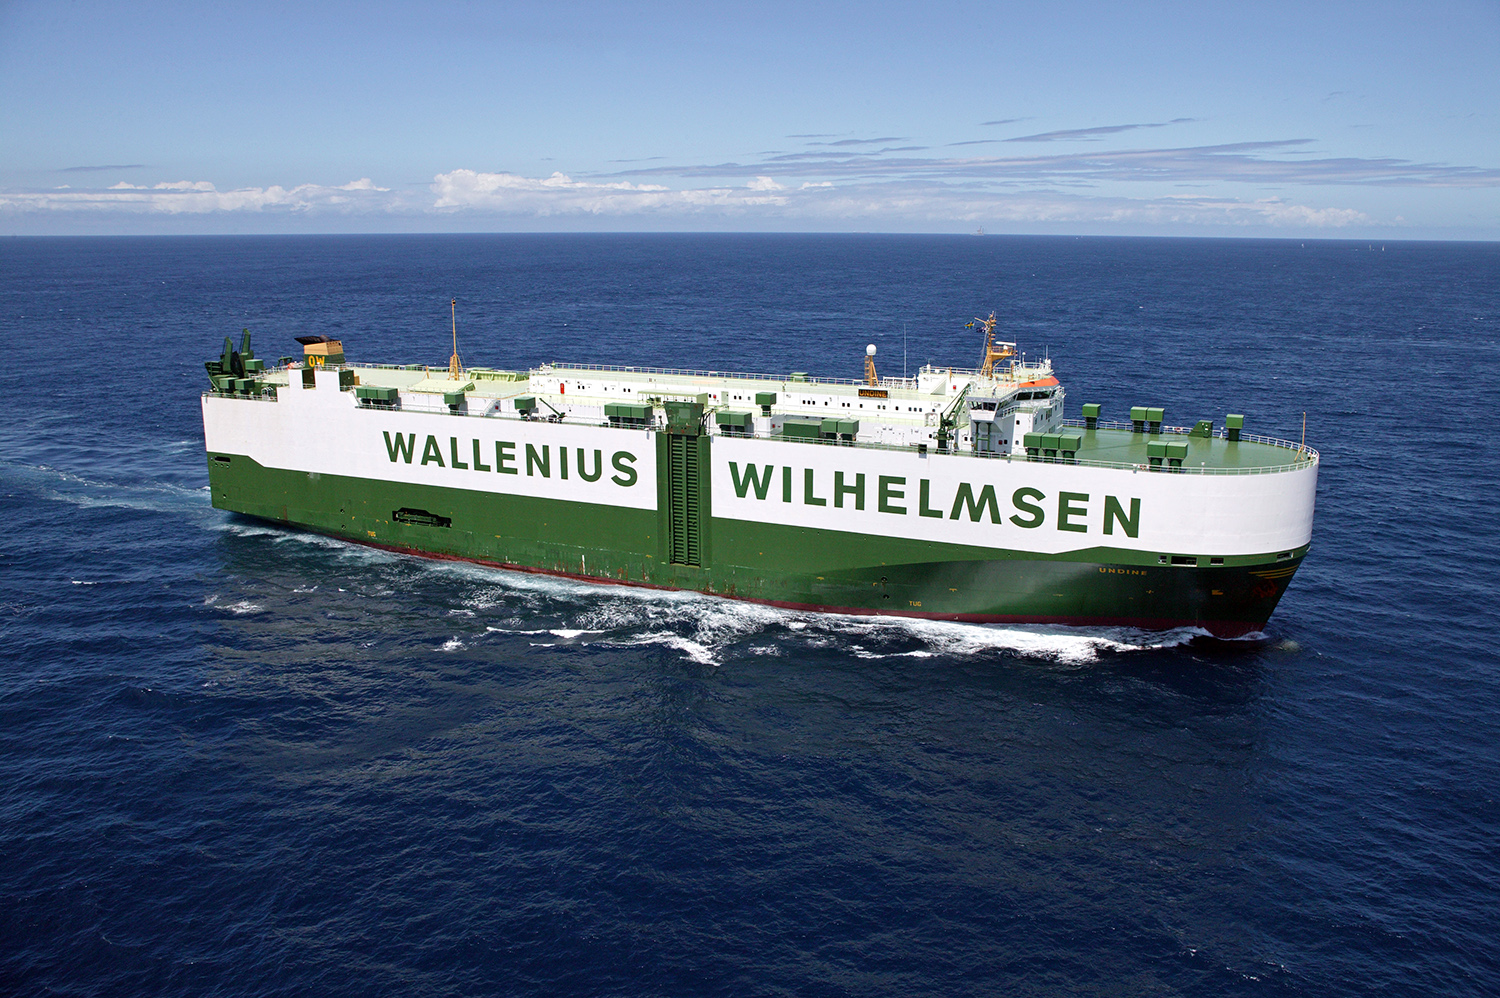 2014 – WALLENIUS MACHINERY VENTILATION CONTROL, ONGOING